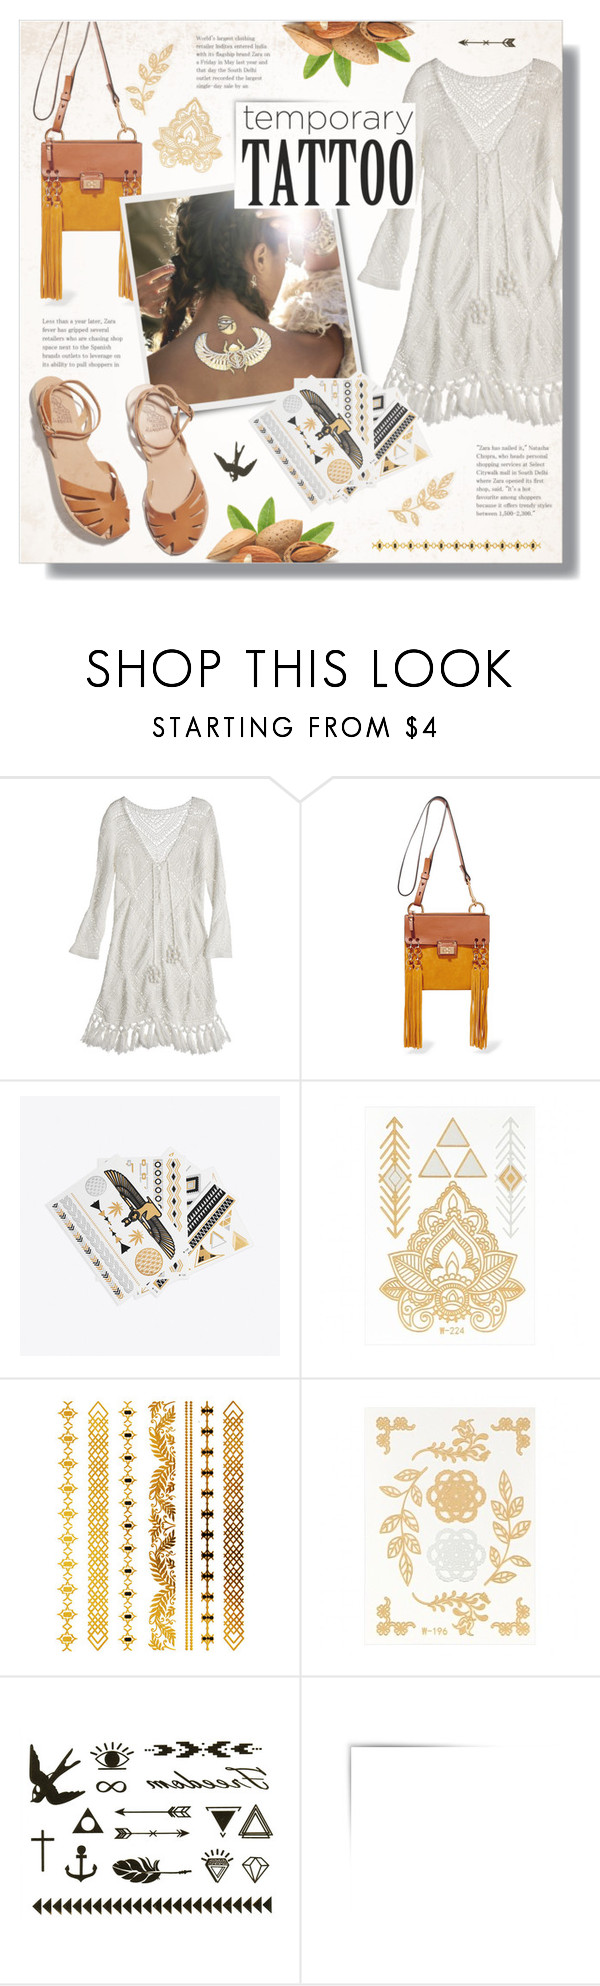 """Today's Tattoos"" by alexandrazeres ❤ liked on Polyvore featuring beauty, Calypso St. Barth, Chloé, Ancient Greek Sandals, fashionset, beautyset, temporarytattoo and flashtattoo"